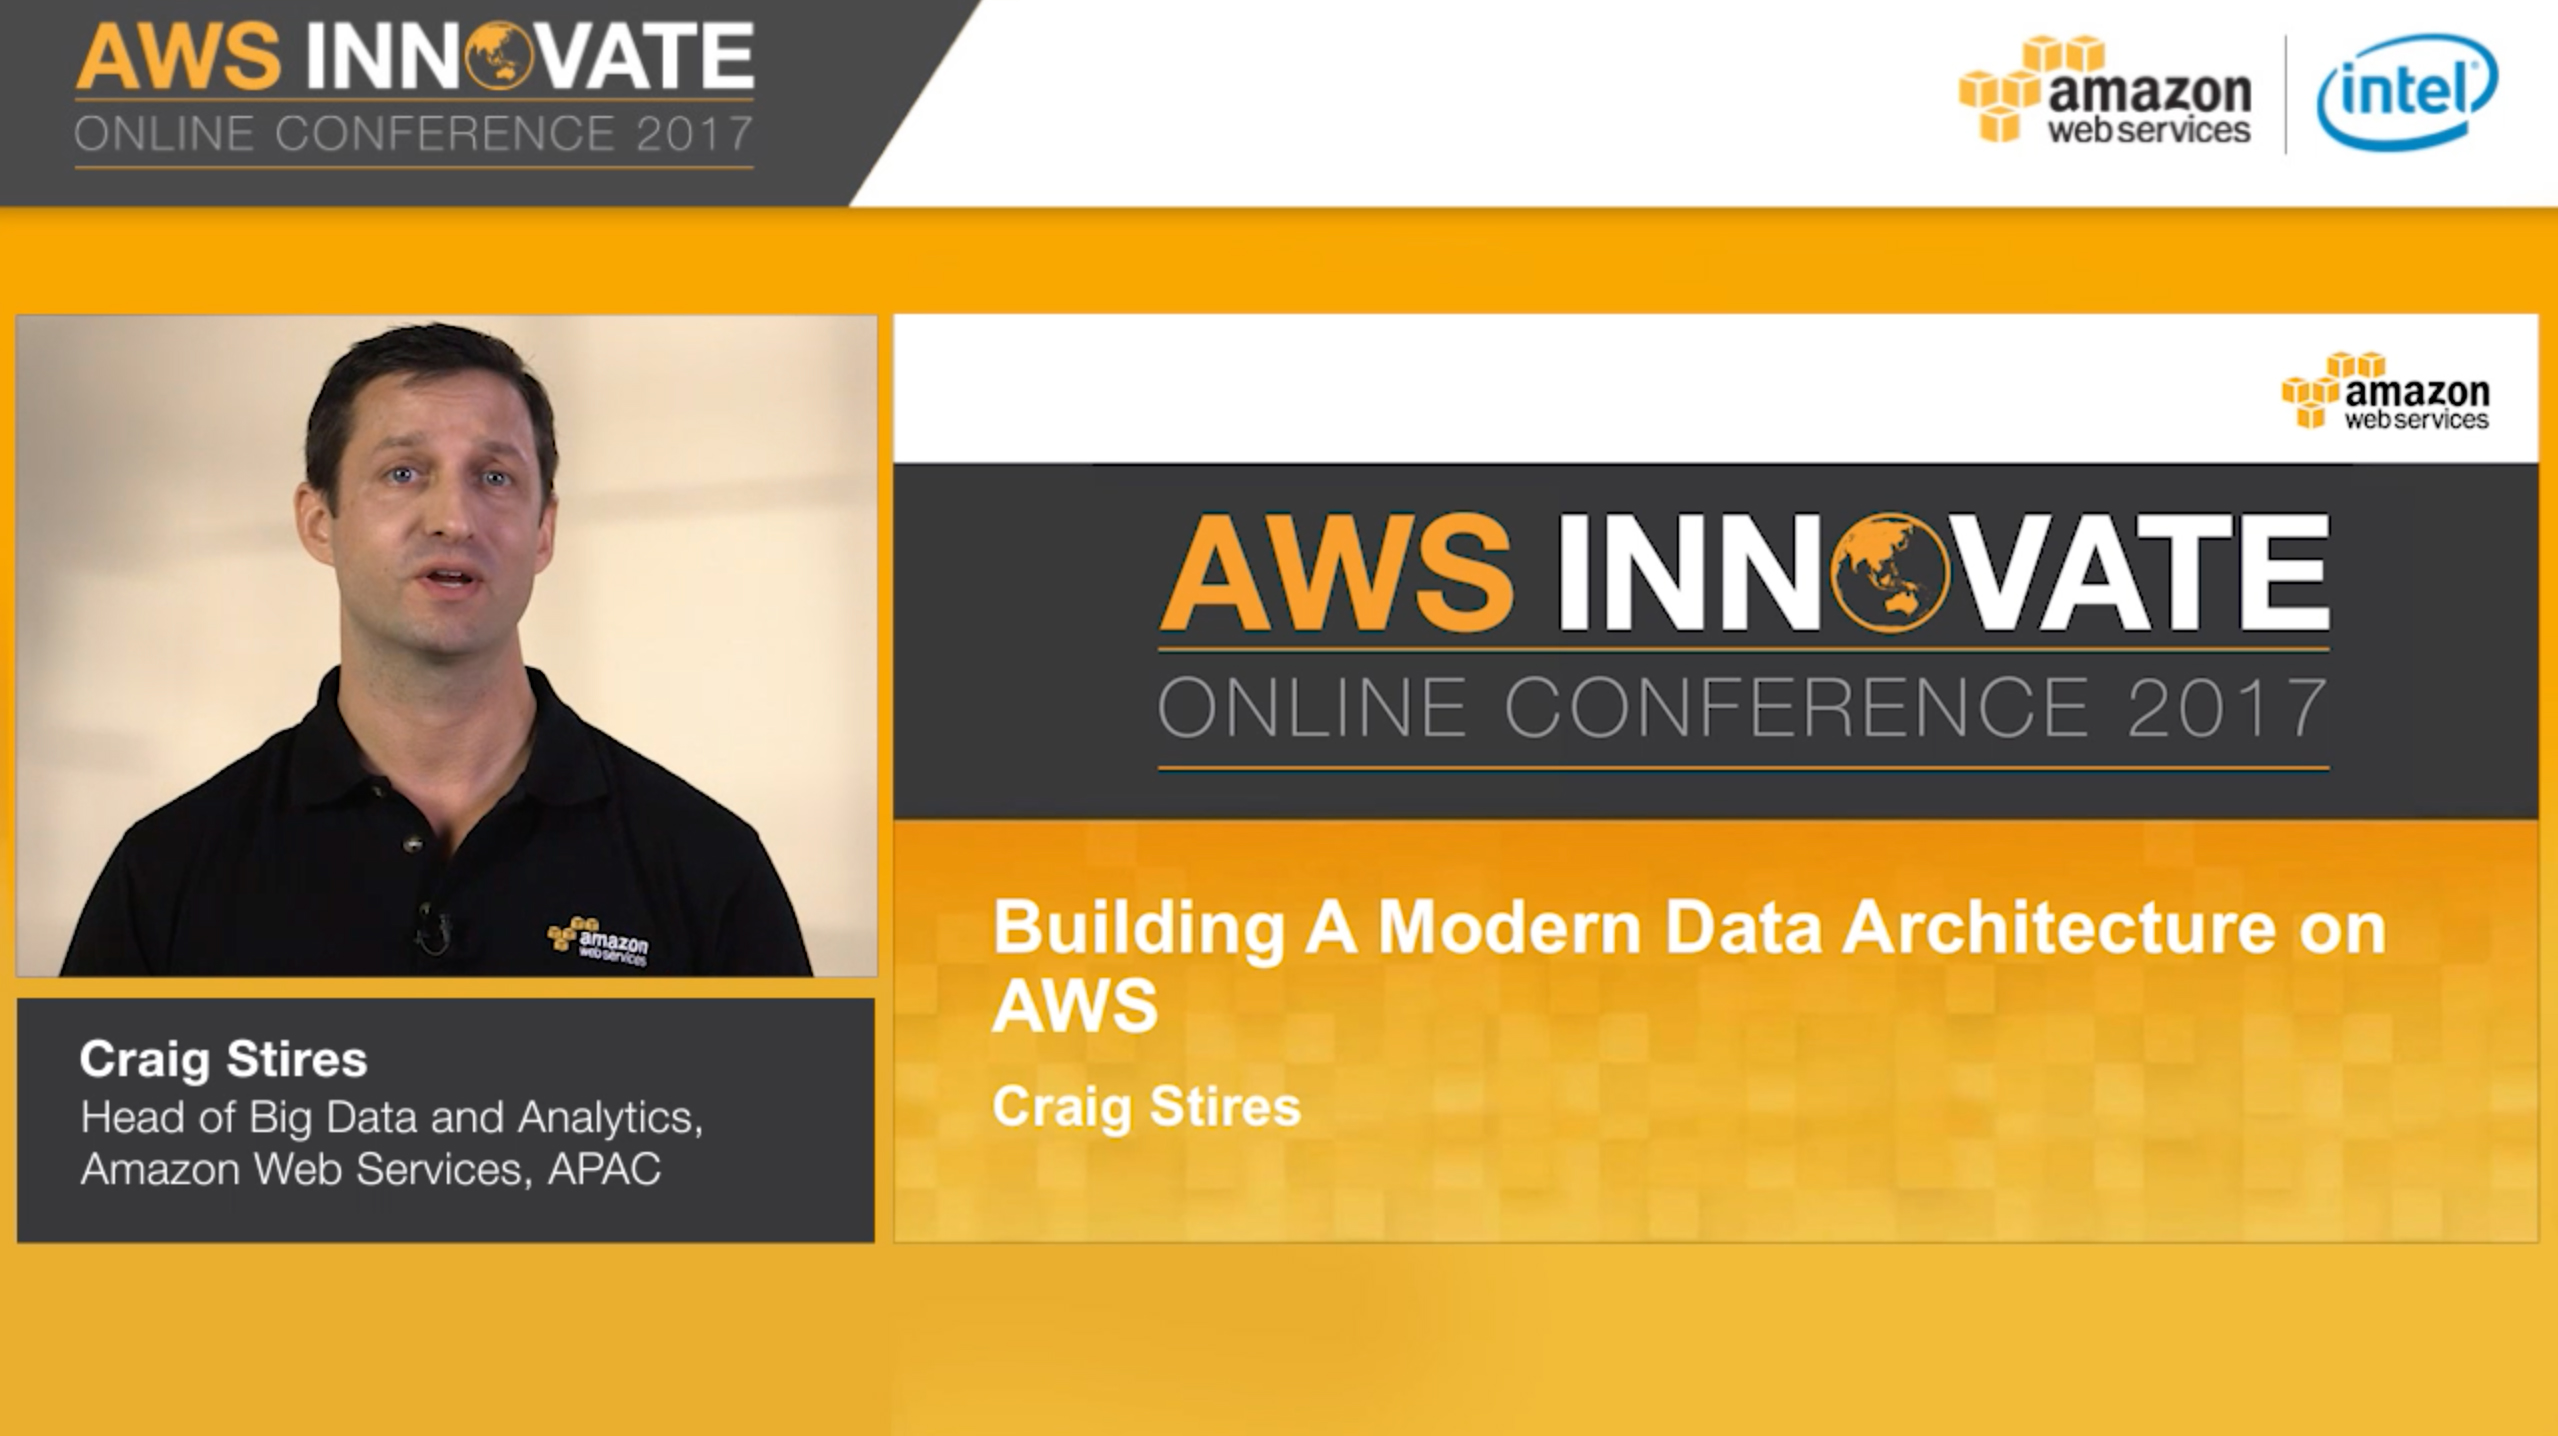 bigdata-onaws-it-building-a-modern-data